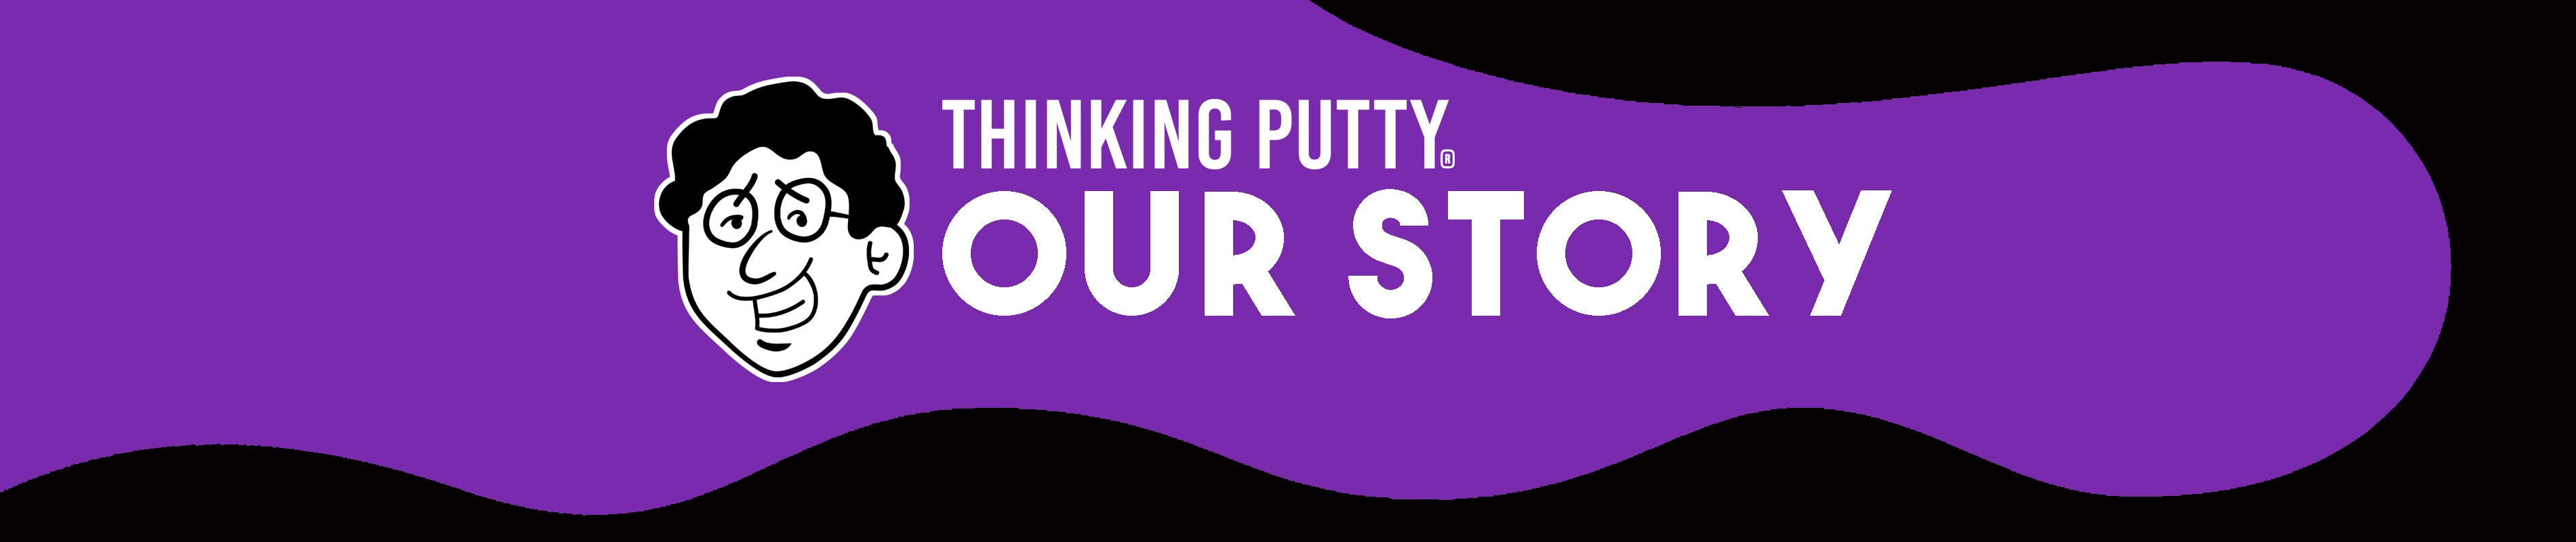 Crazy Aaron's Thinking Putty Story